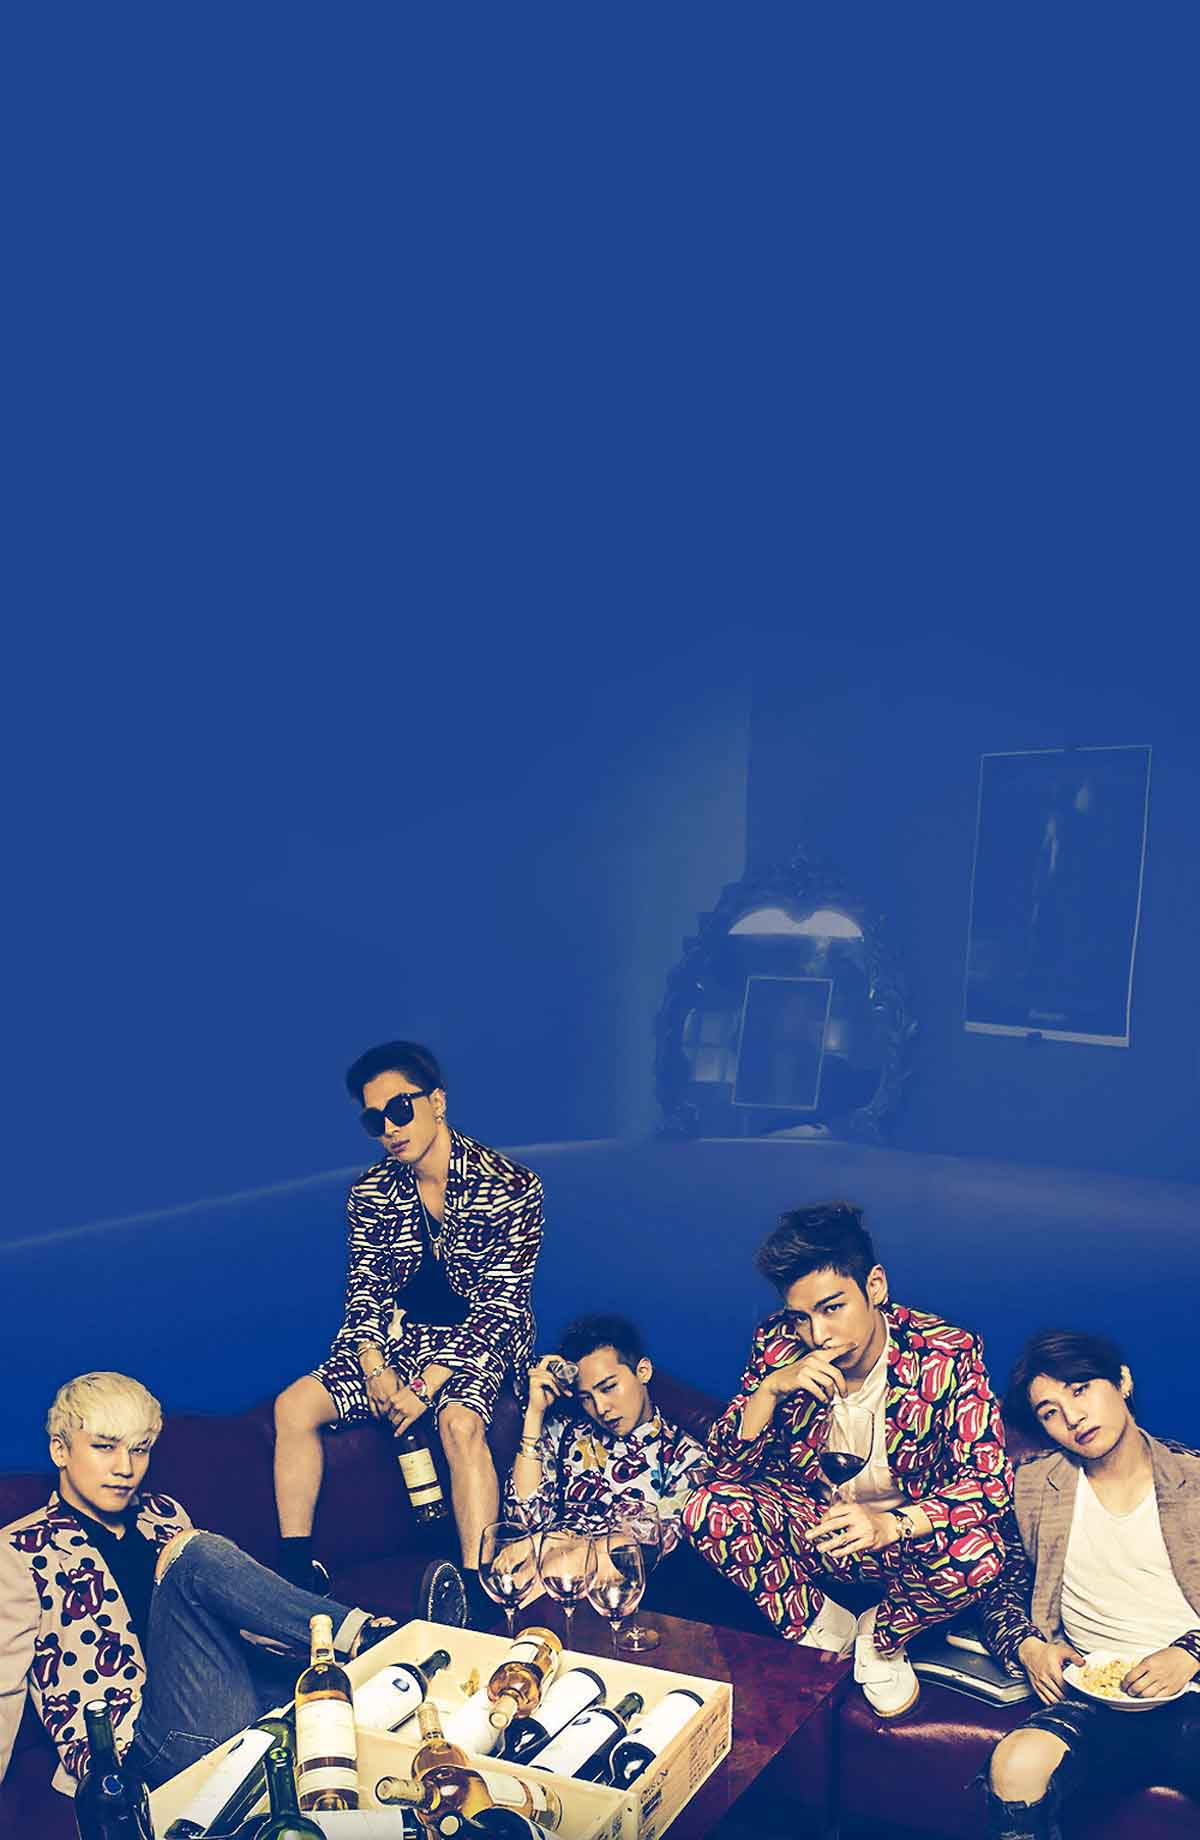 Wallpaper Big Bang Posted By Ethan Peltier